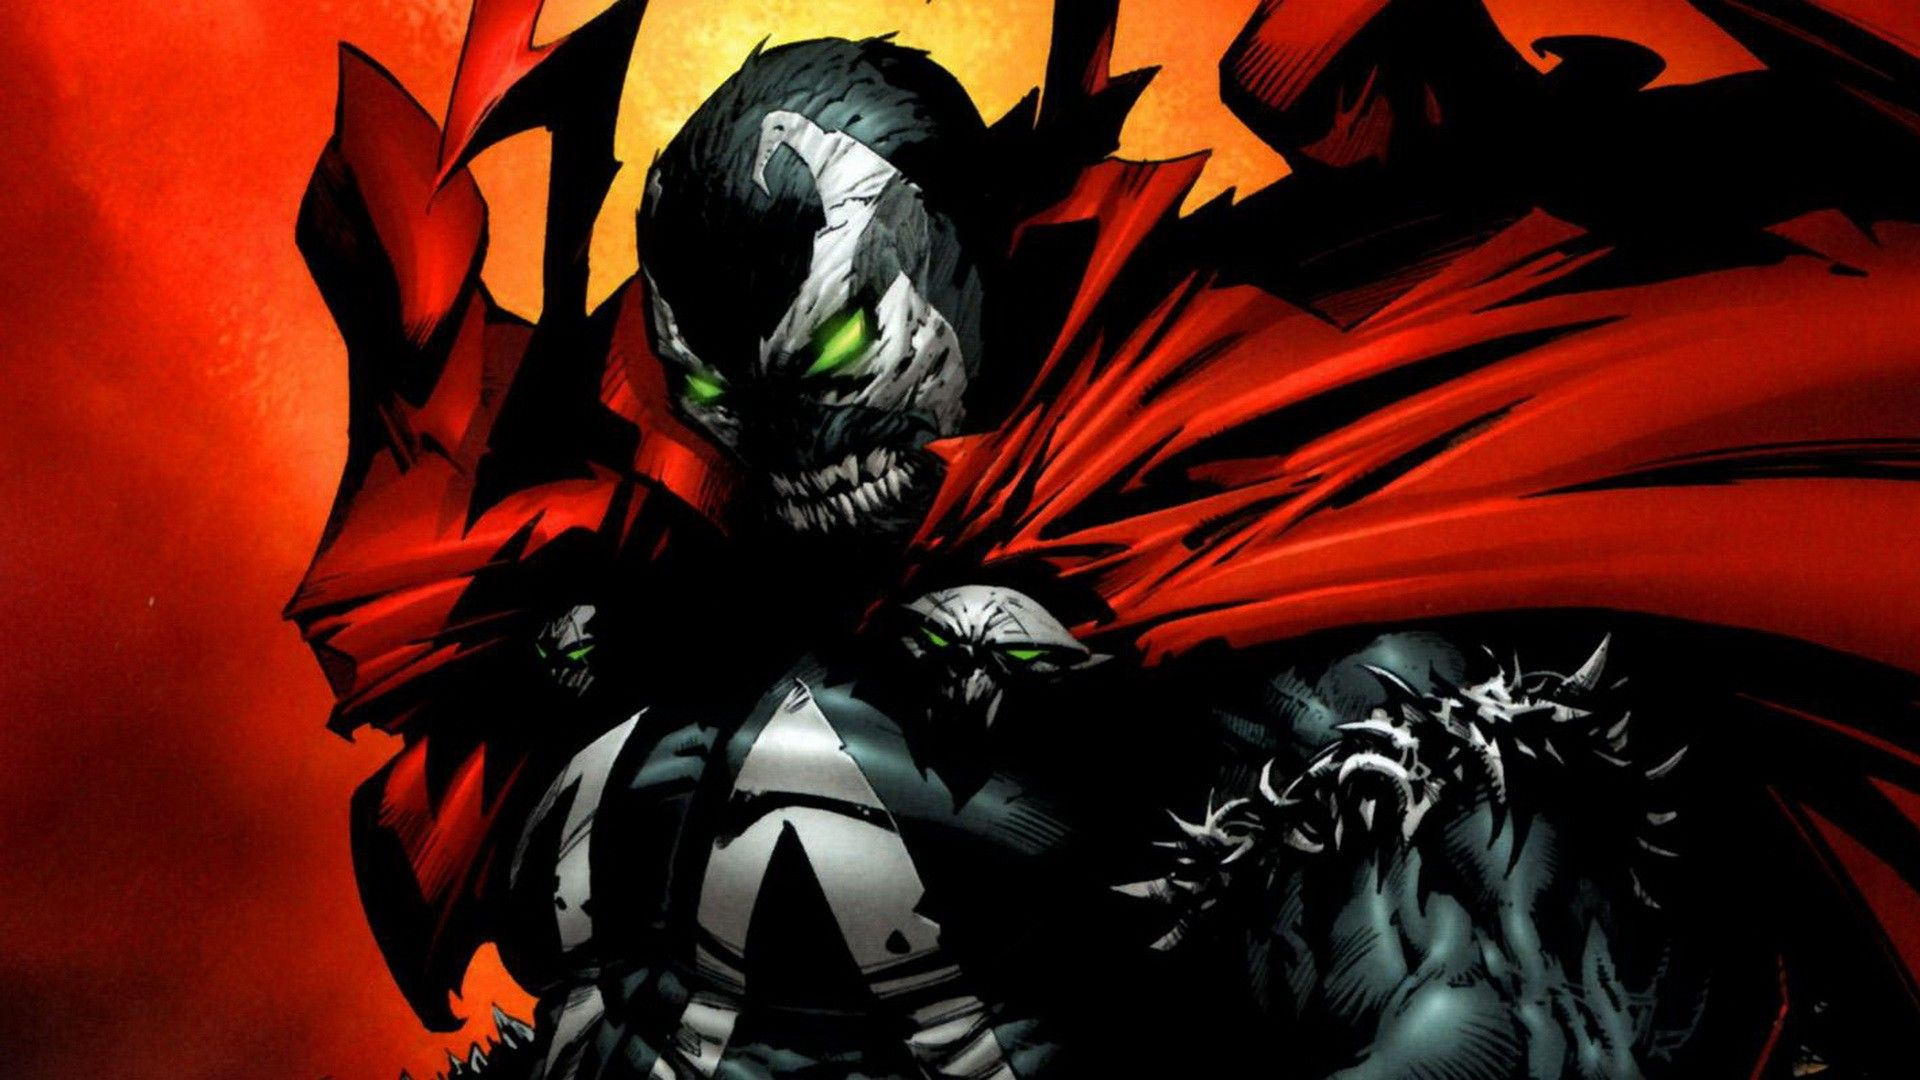 Download Spawn Wallpaper Photo for iphone, pc desktop